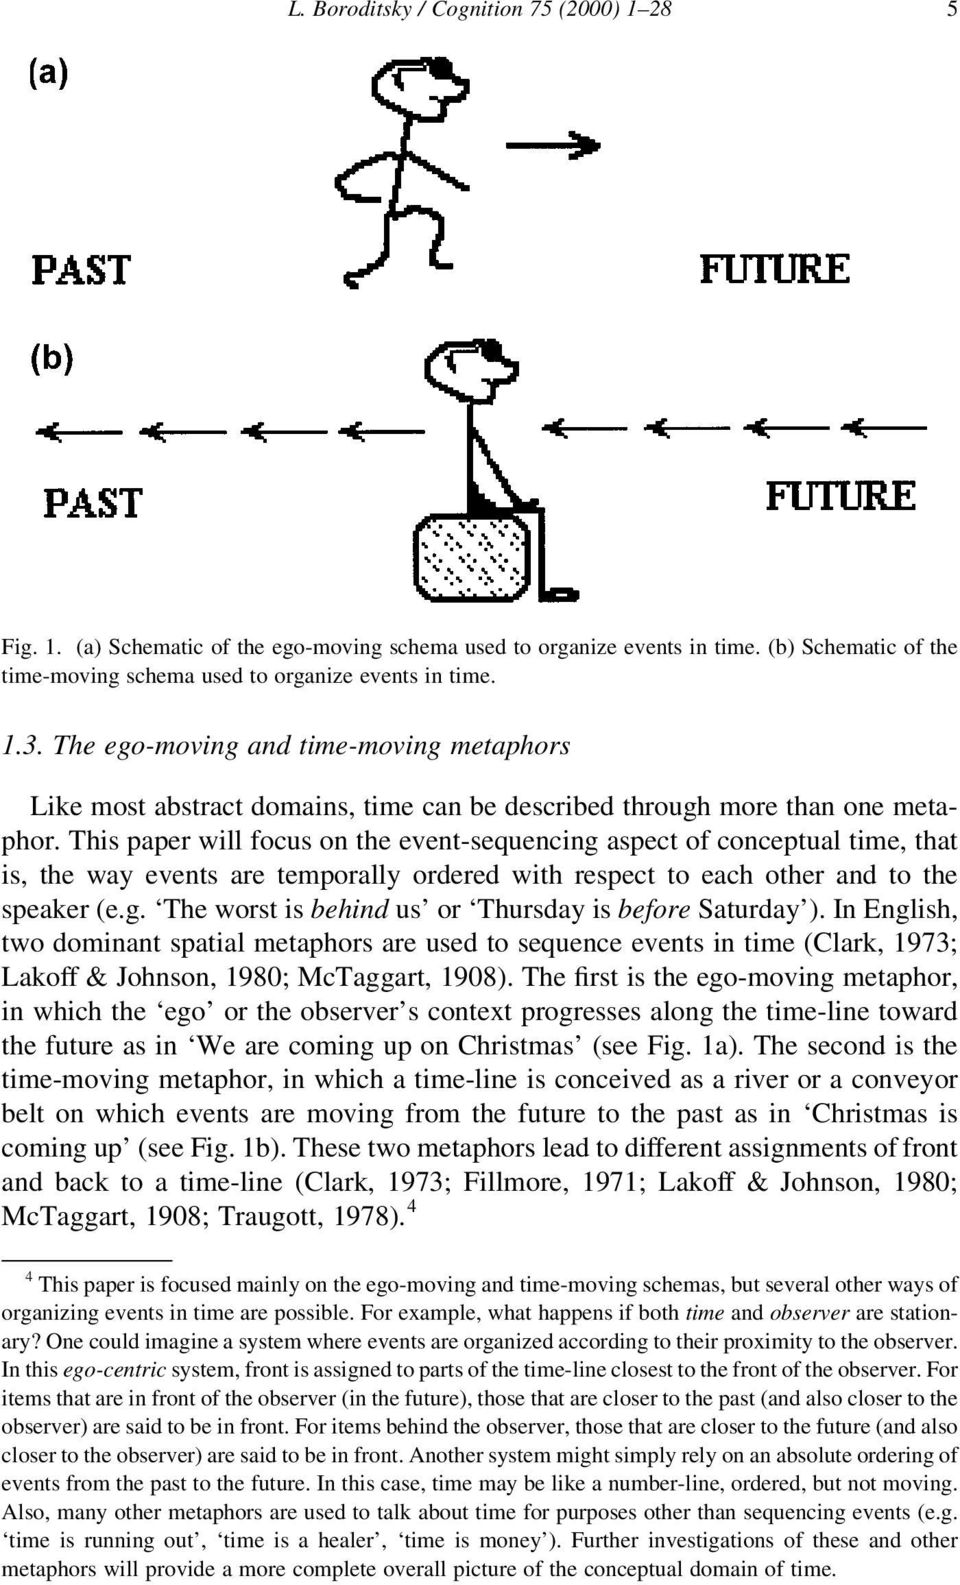 This paper will focus on the event-sequencing aspect of conceptual time, that is, the way events are temporally ordered with respect to each other and to the speaker (e.g. `The worst is behind us' or `Thursday is before Saturday').